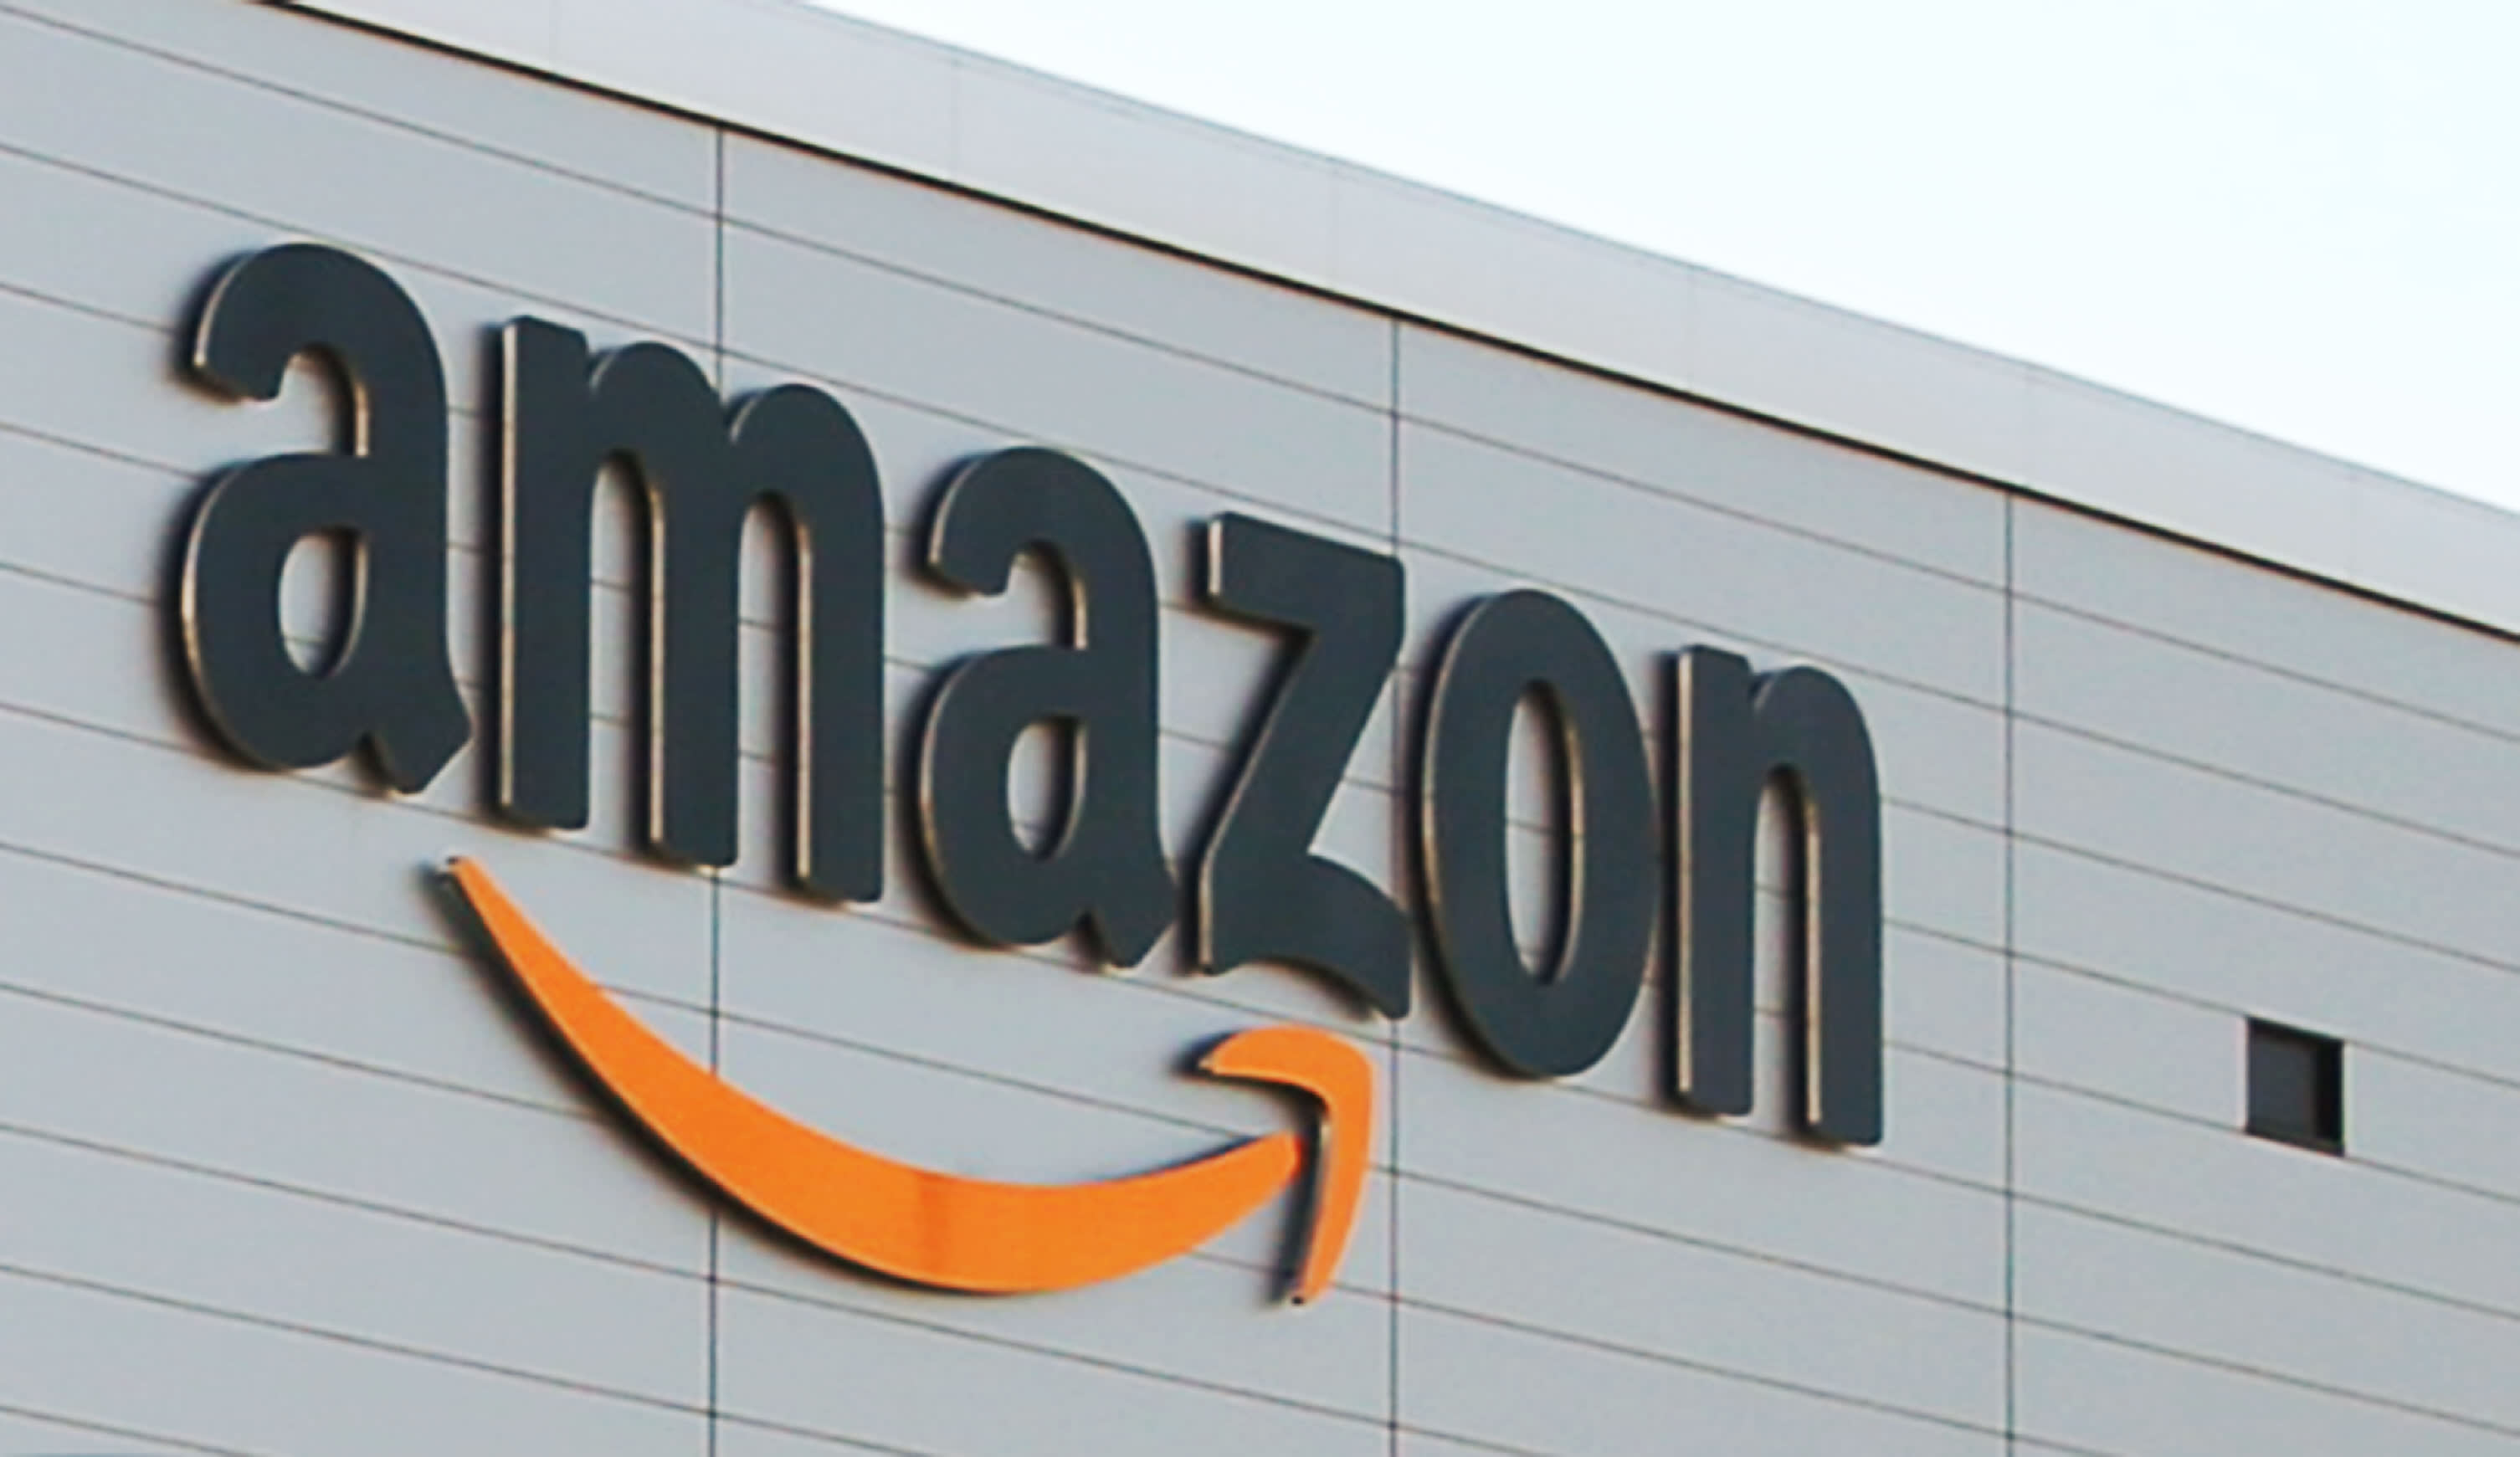 Amazon Japan to build stable of 10,000+ independent couriers